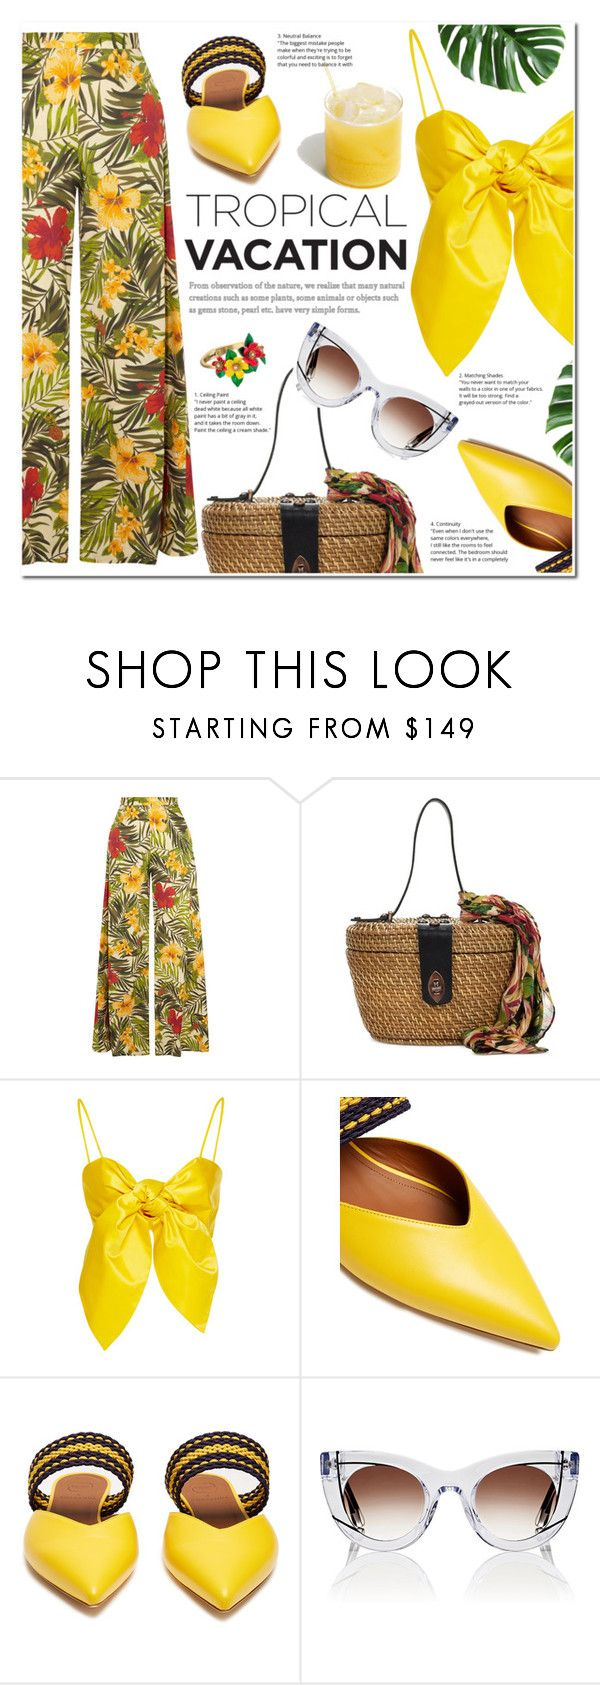 """""""Welcome to Paradise: Tropical Vacation"""" by nabilazfr ❤ liked on Polyvore featuring Miguelina, Patricia Nash, Leal Daccarett, Roksanda, Thierry Lasry, Betsey Johnson and TropicalVacation"""